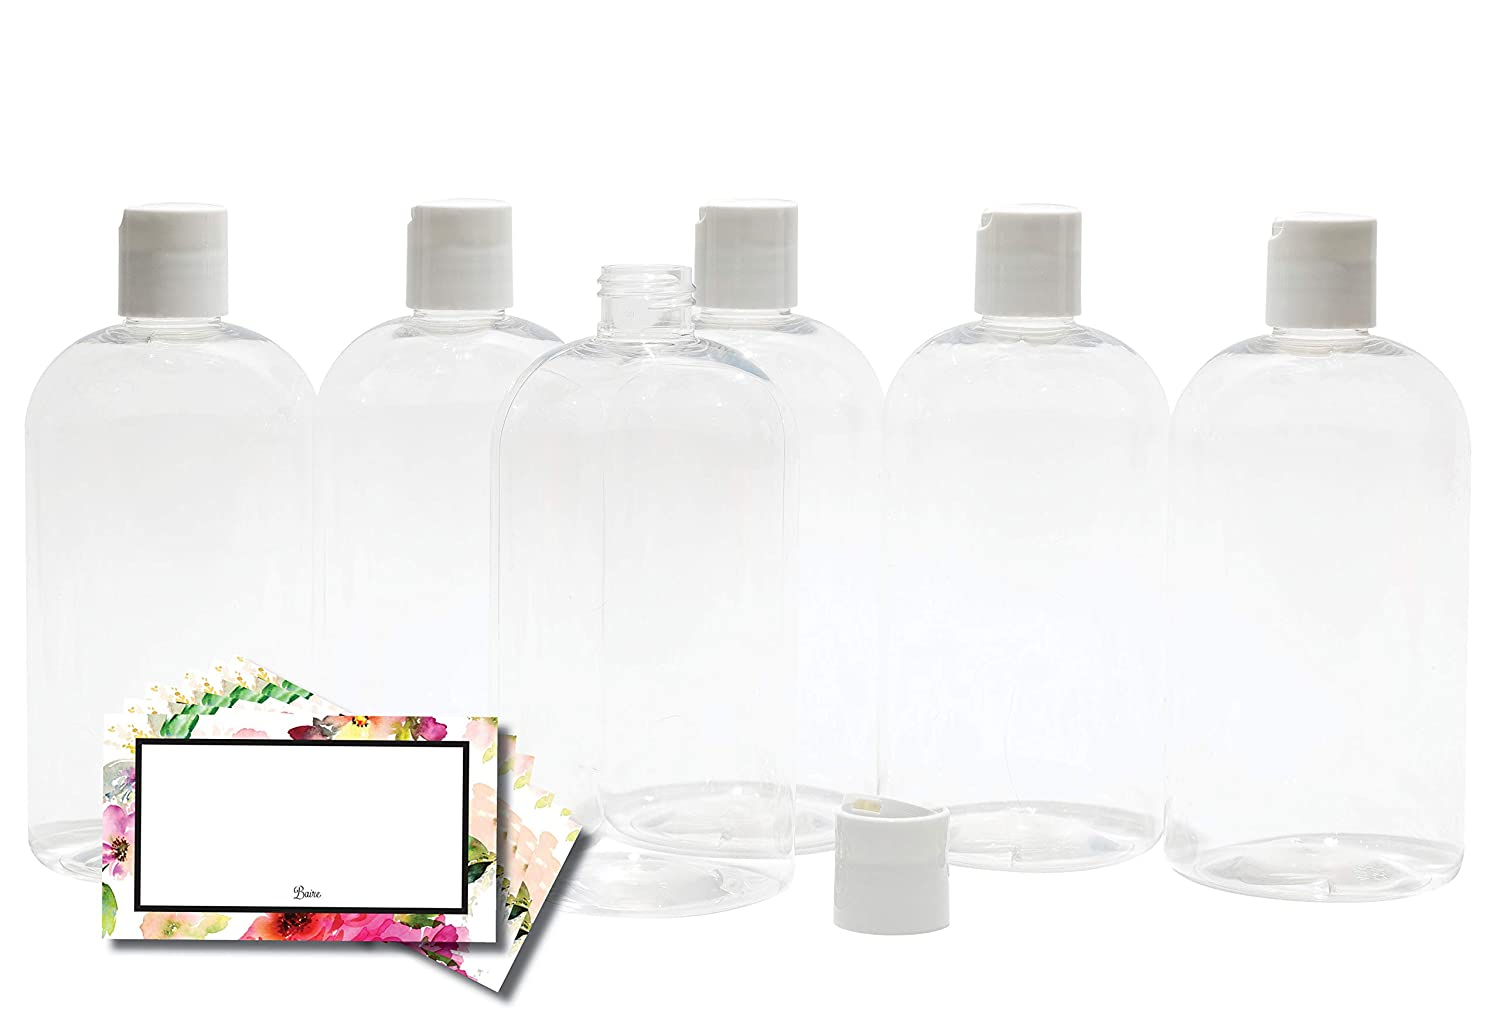 Baire Bottles - 8 Ounce Clear Plastic Bottles with White Hand-Press Flip Disc Caps - Organize Soap, Shampoo, Lotion with a Clean, Clear Look - PET, No BPA - 6 Pack, including 6 Floral Labels